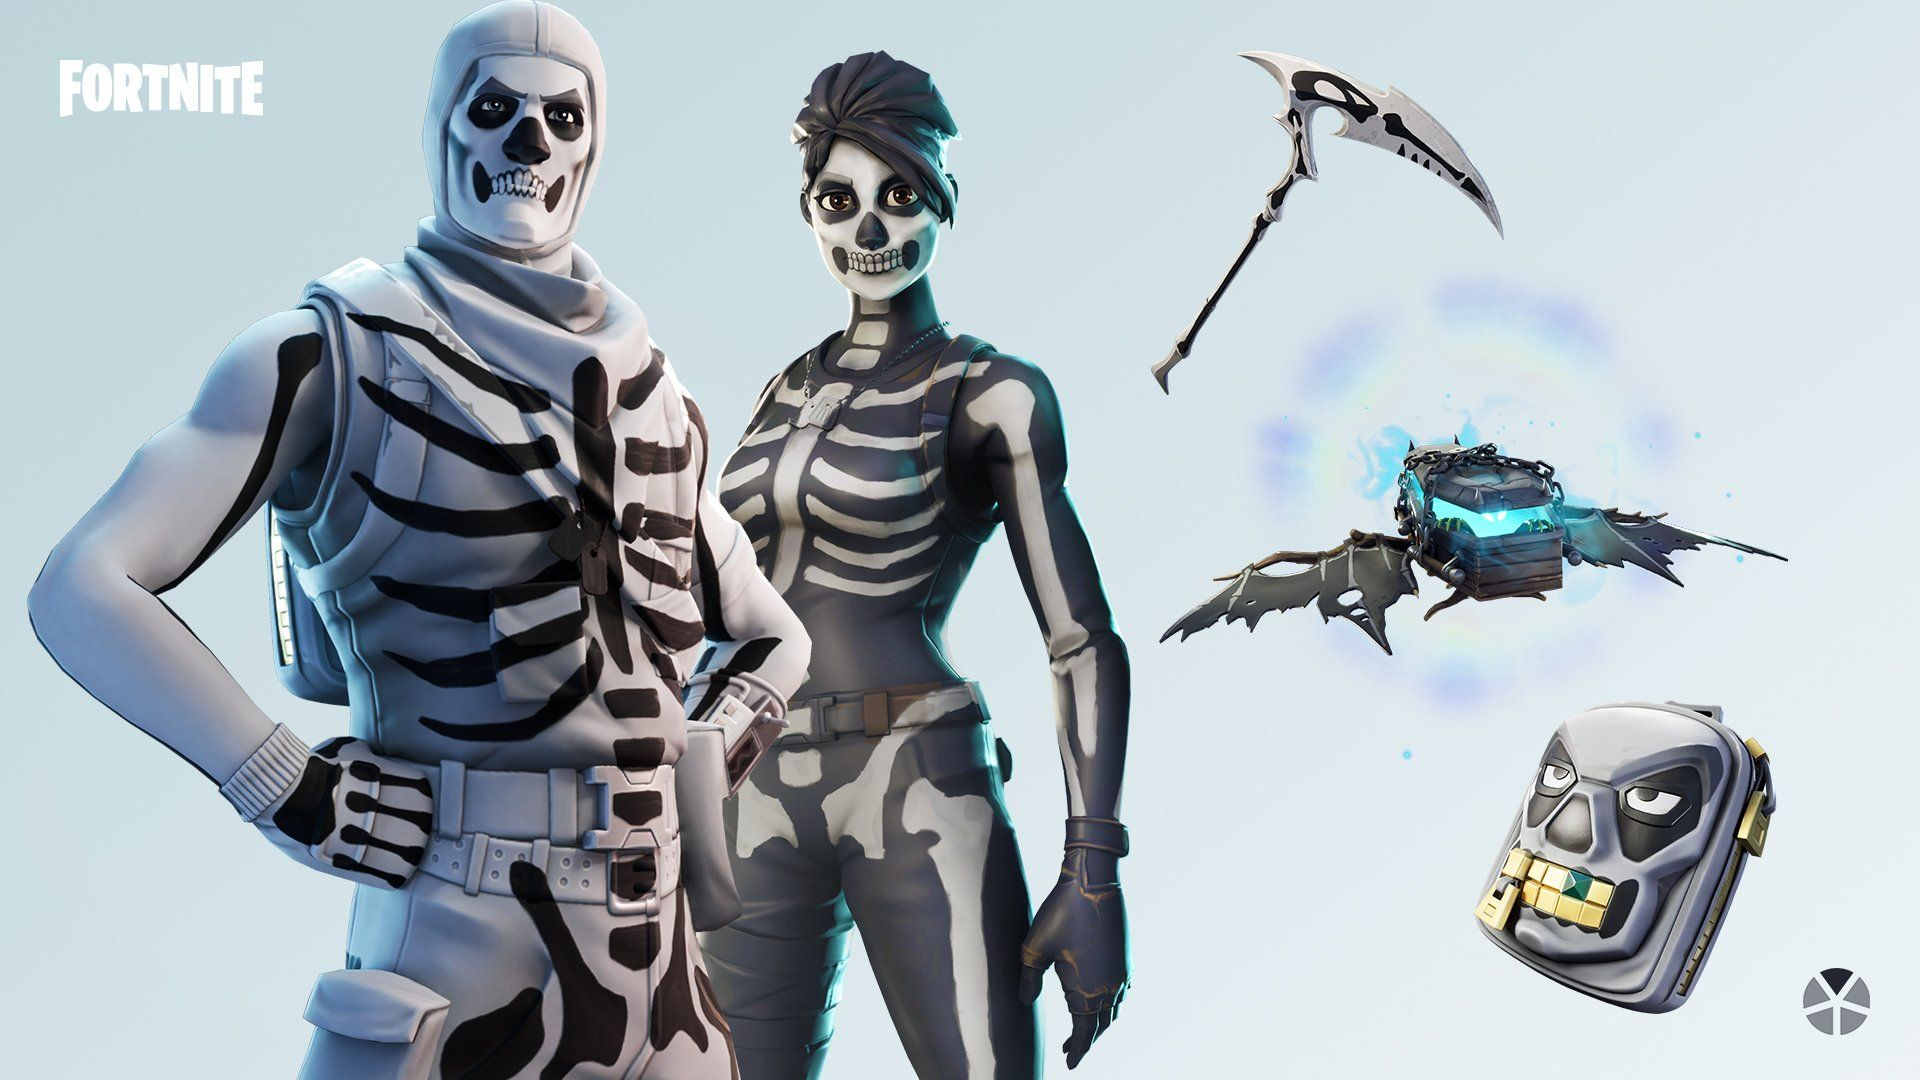 Fortnite Halloween Update 2020 Release Date The majority of Halloween Fortnite skins have now been released in